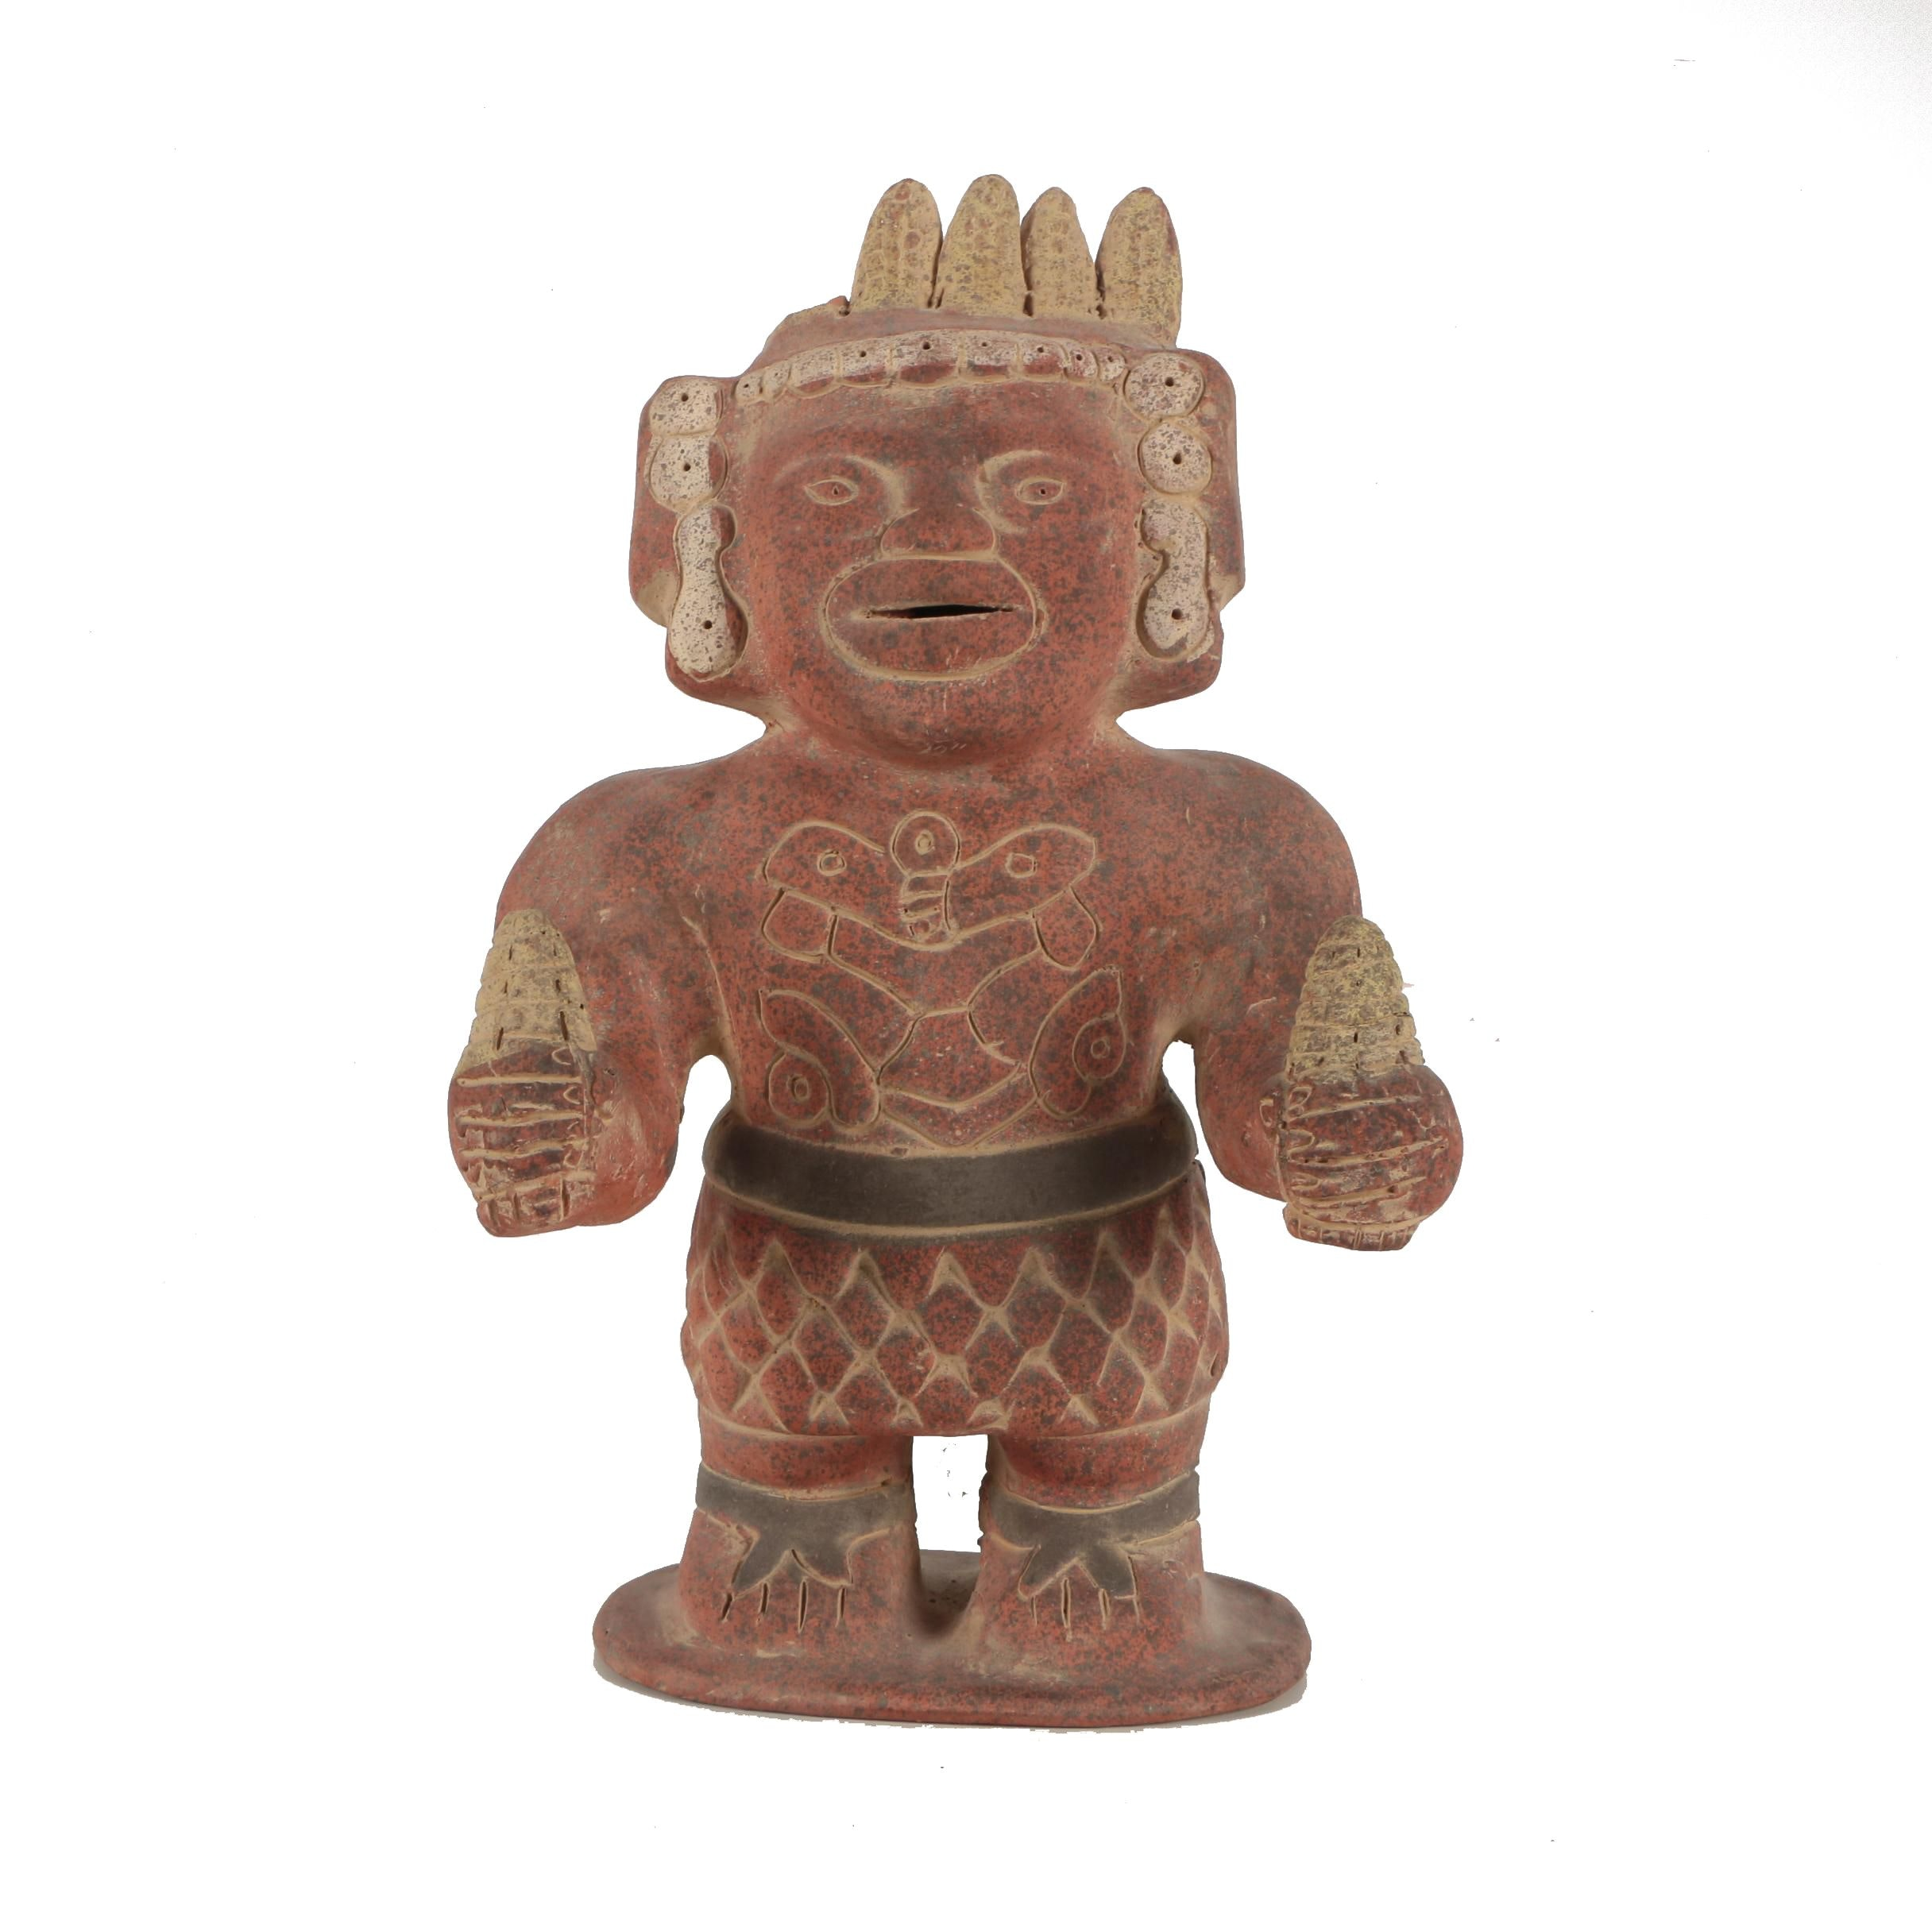 Central American-Style Ceramic Warrior Sculpture